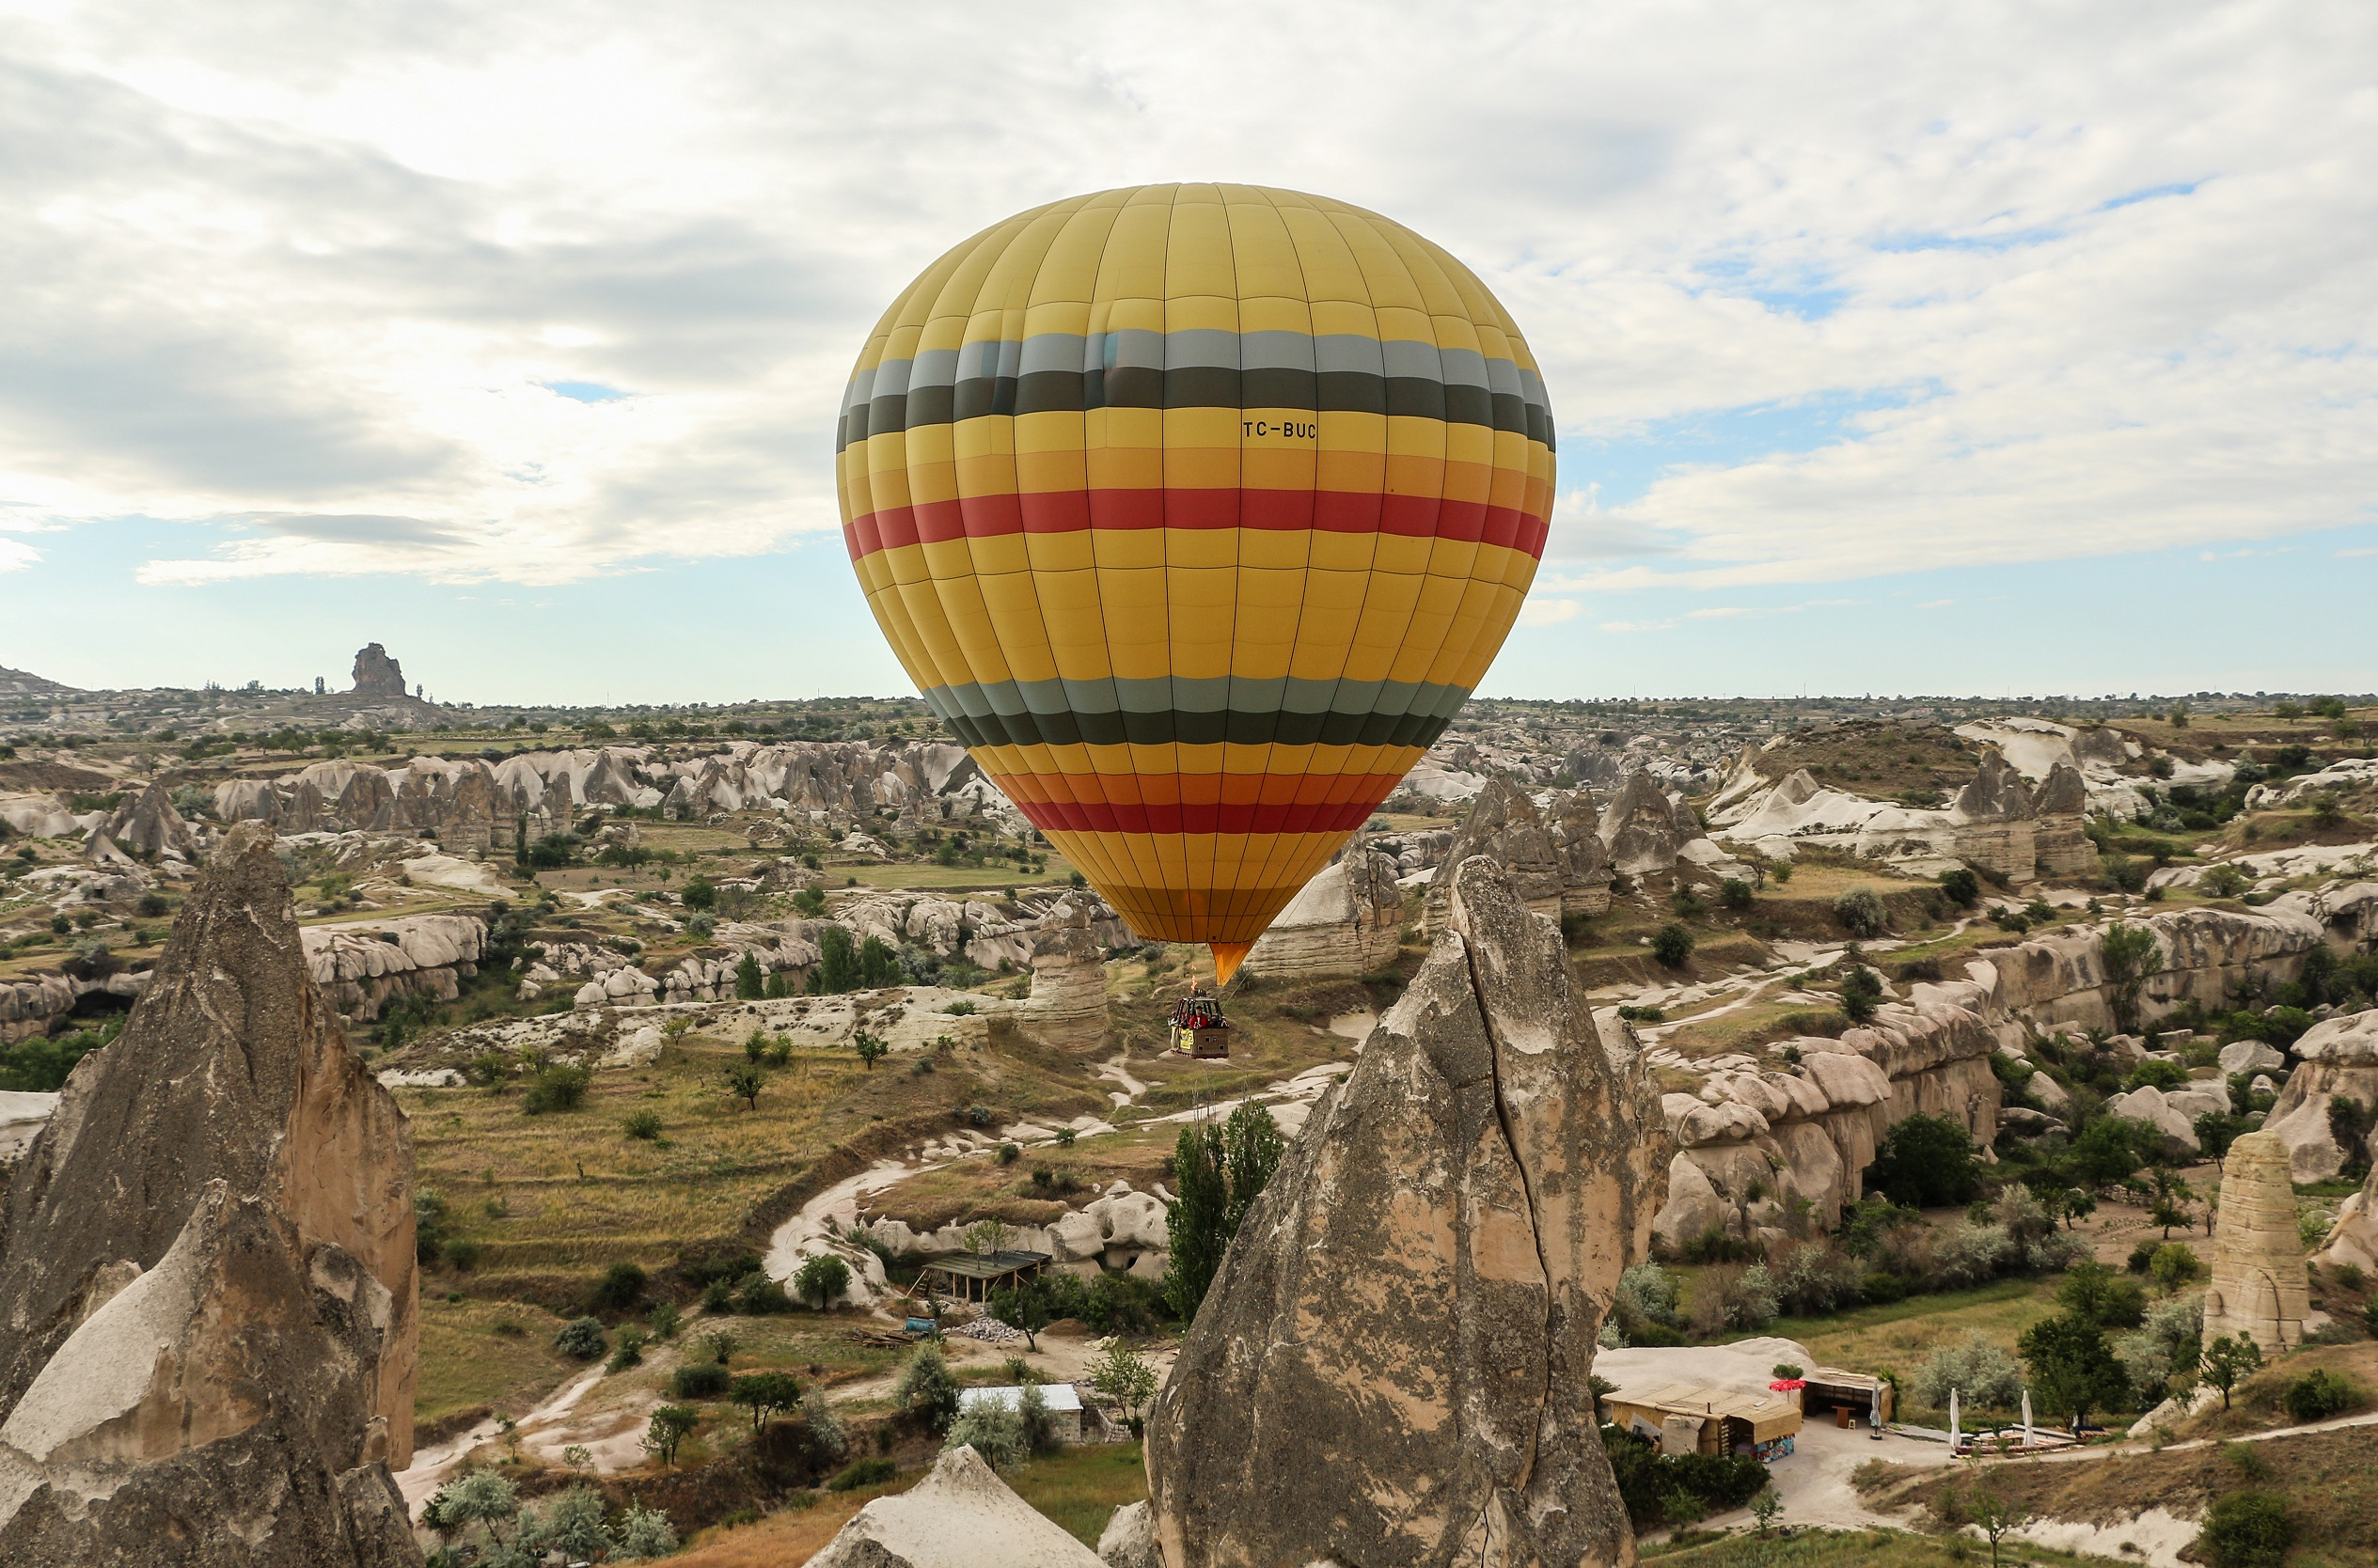 Hot air balloon in Cappadocia; Image credit